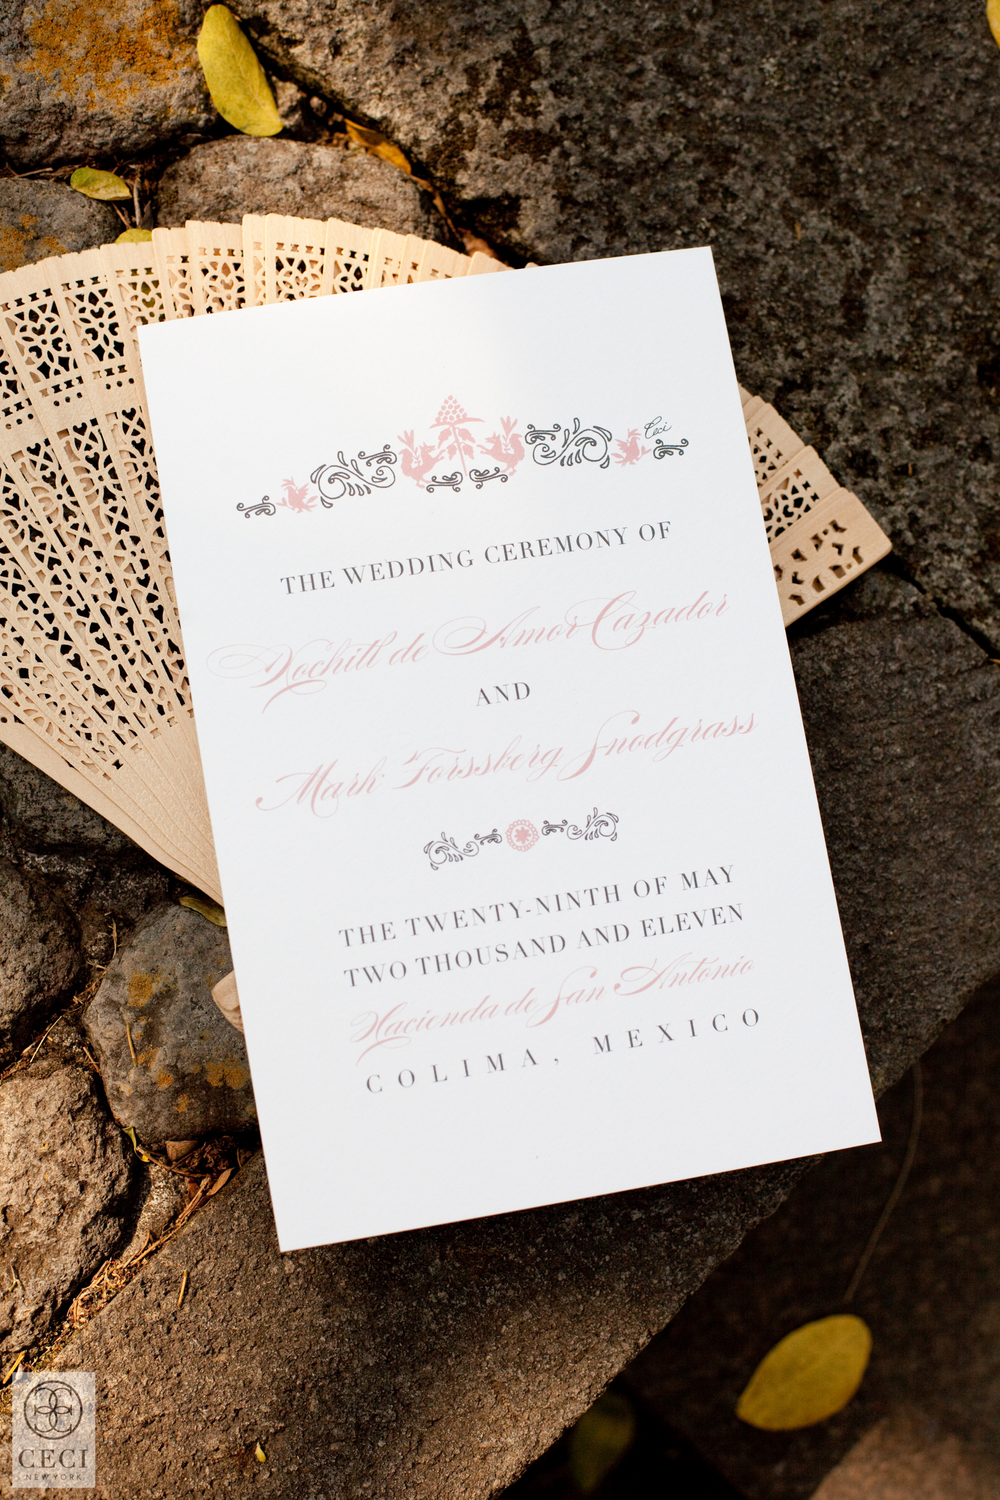 Ceci_New_York_Custom_Luxury_Wedding_LaserCut_Stationery_Personalized_Couture_Foil_Stamping_Mexico_Otomi_Chic_-9.jpg